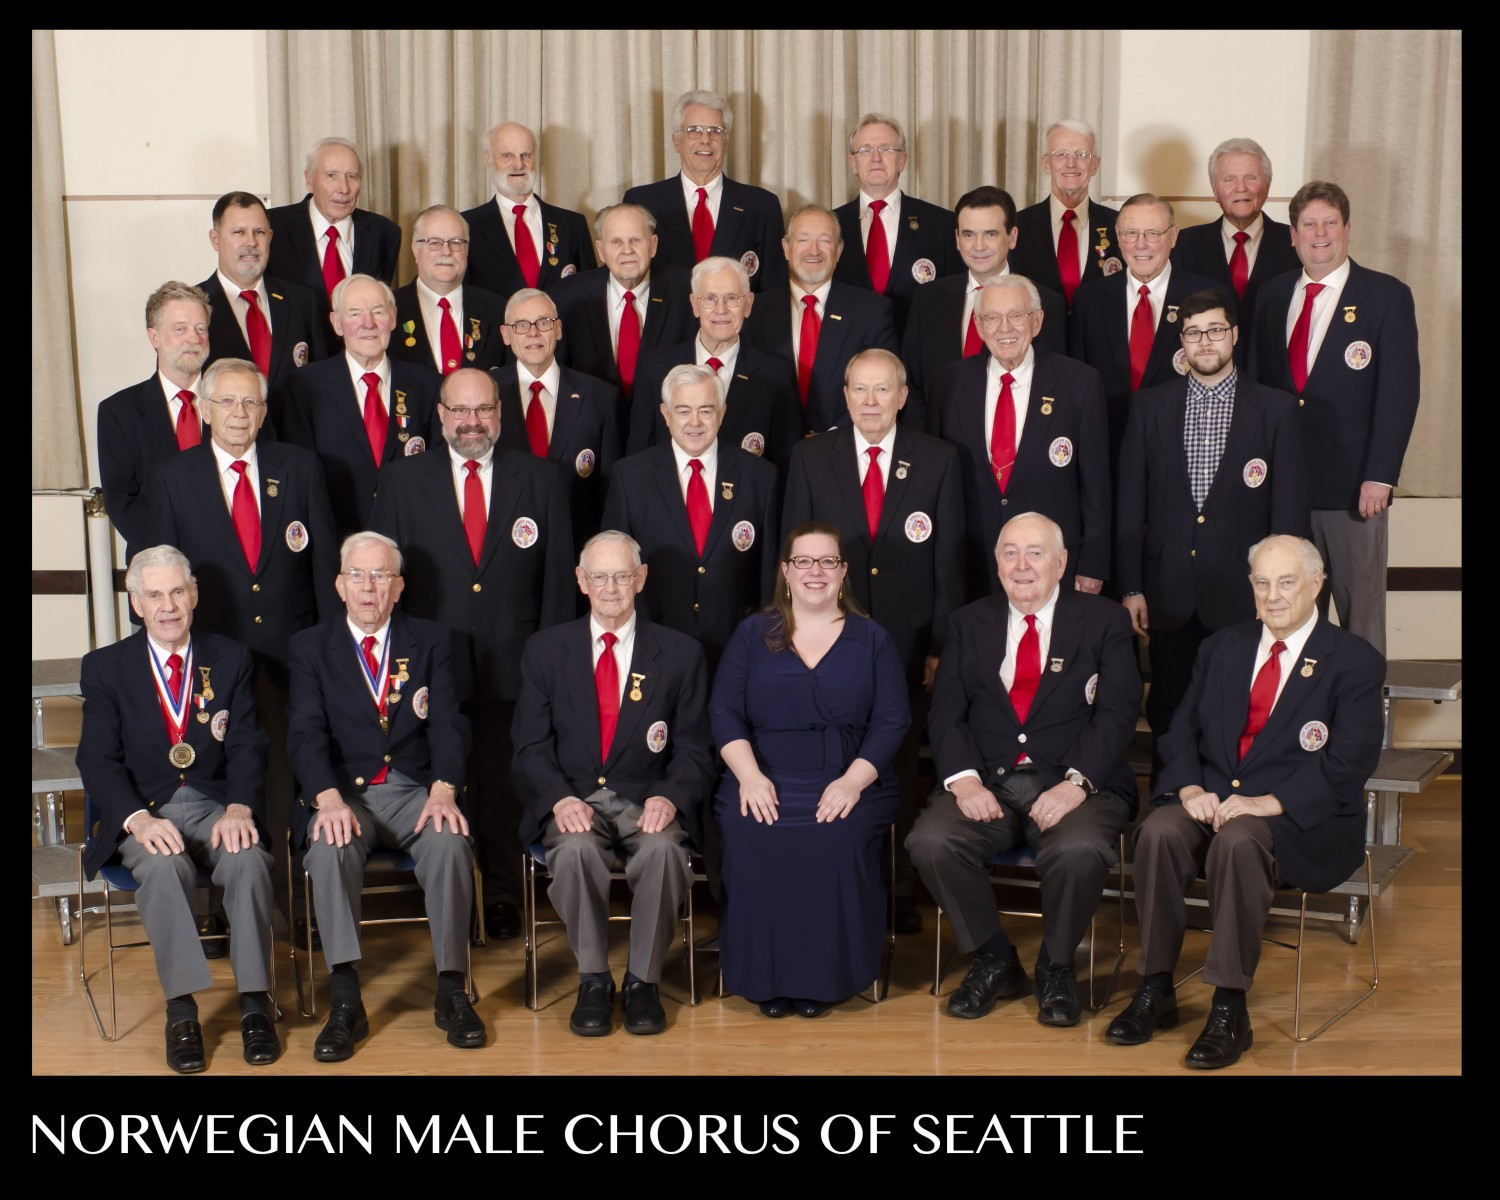 Norwegian Male Chorus of Seattle. NMCS 2016, photo credit Pinehurst Photography